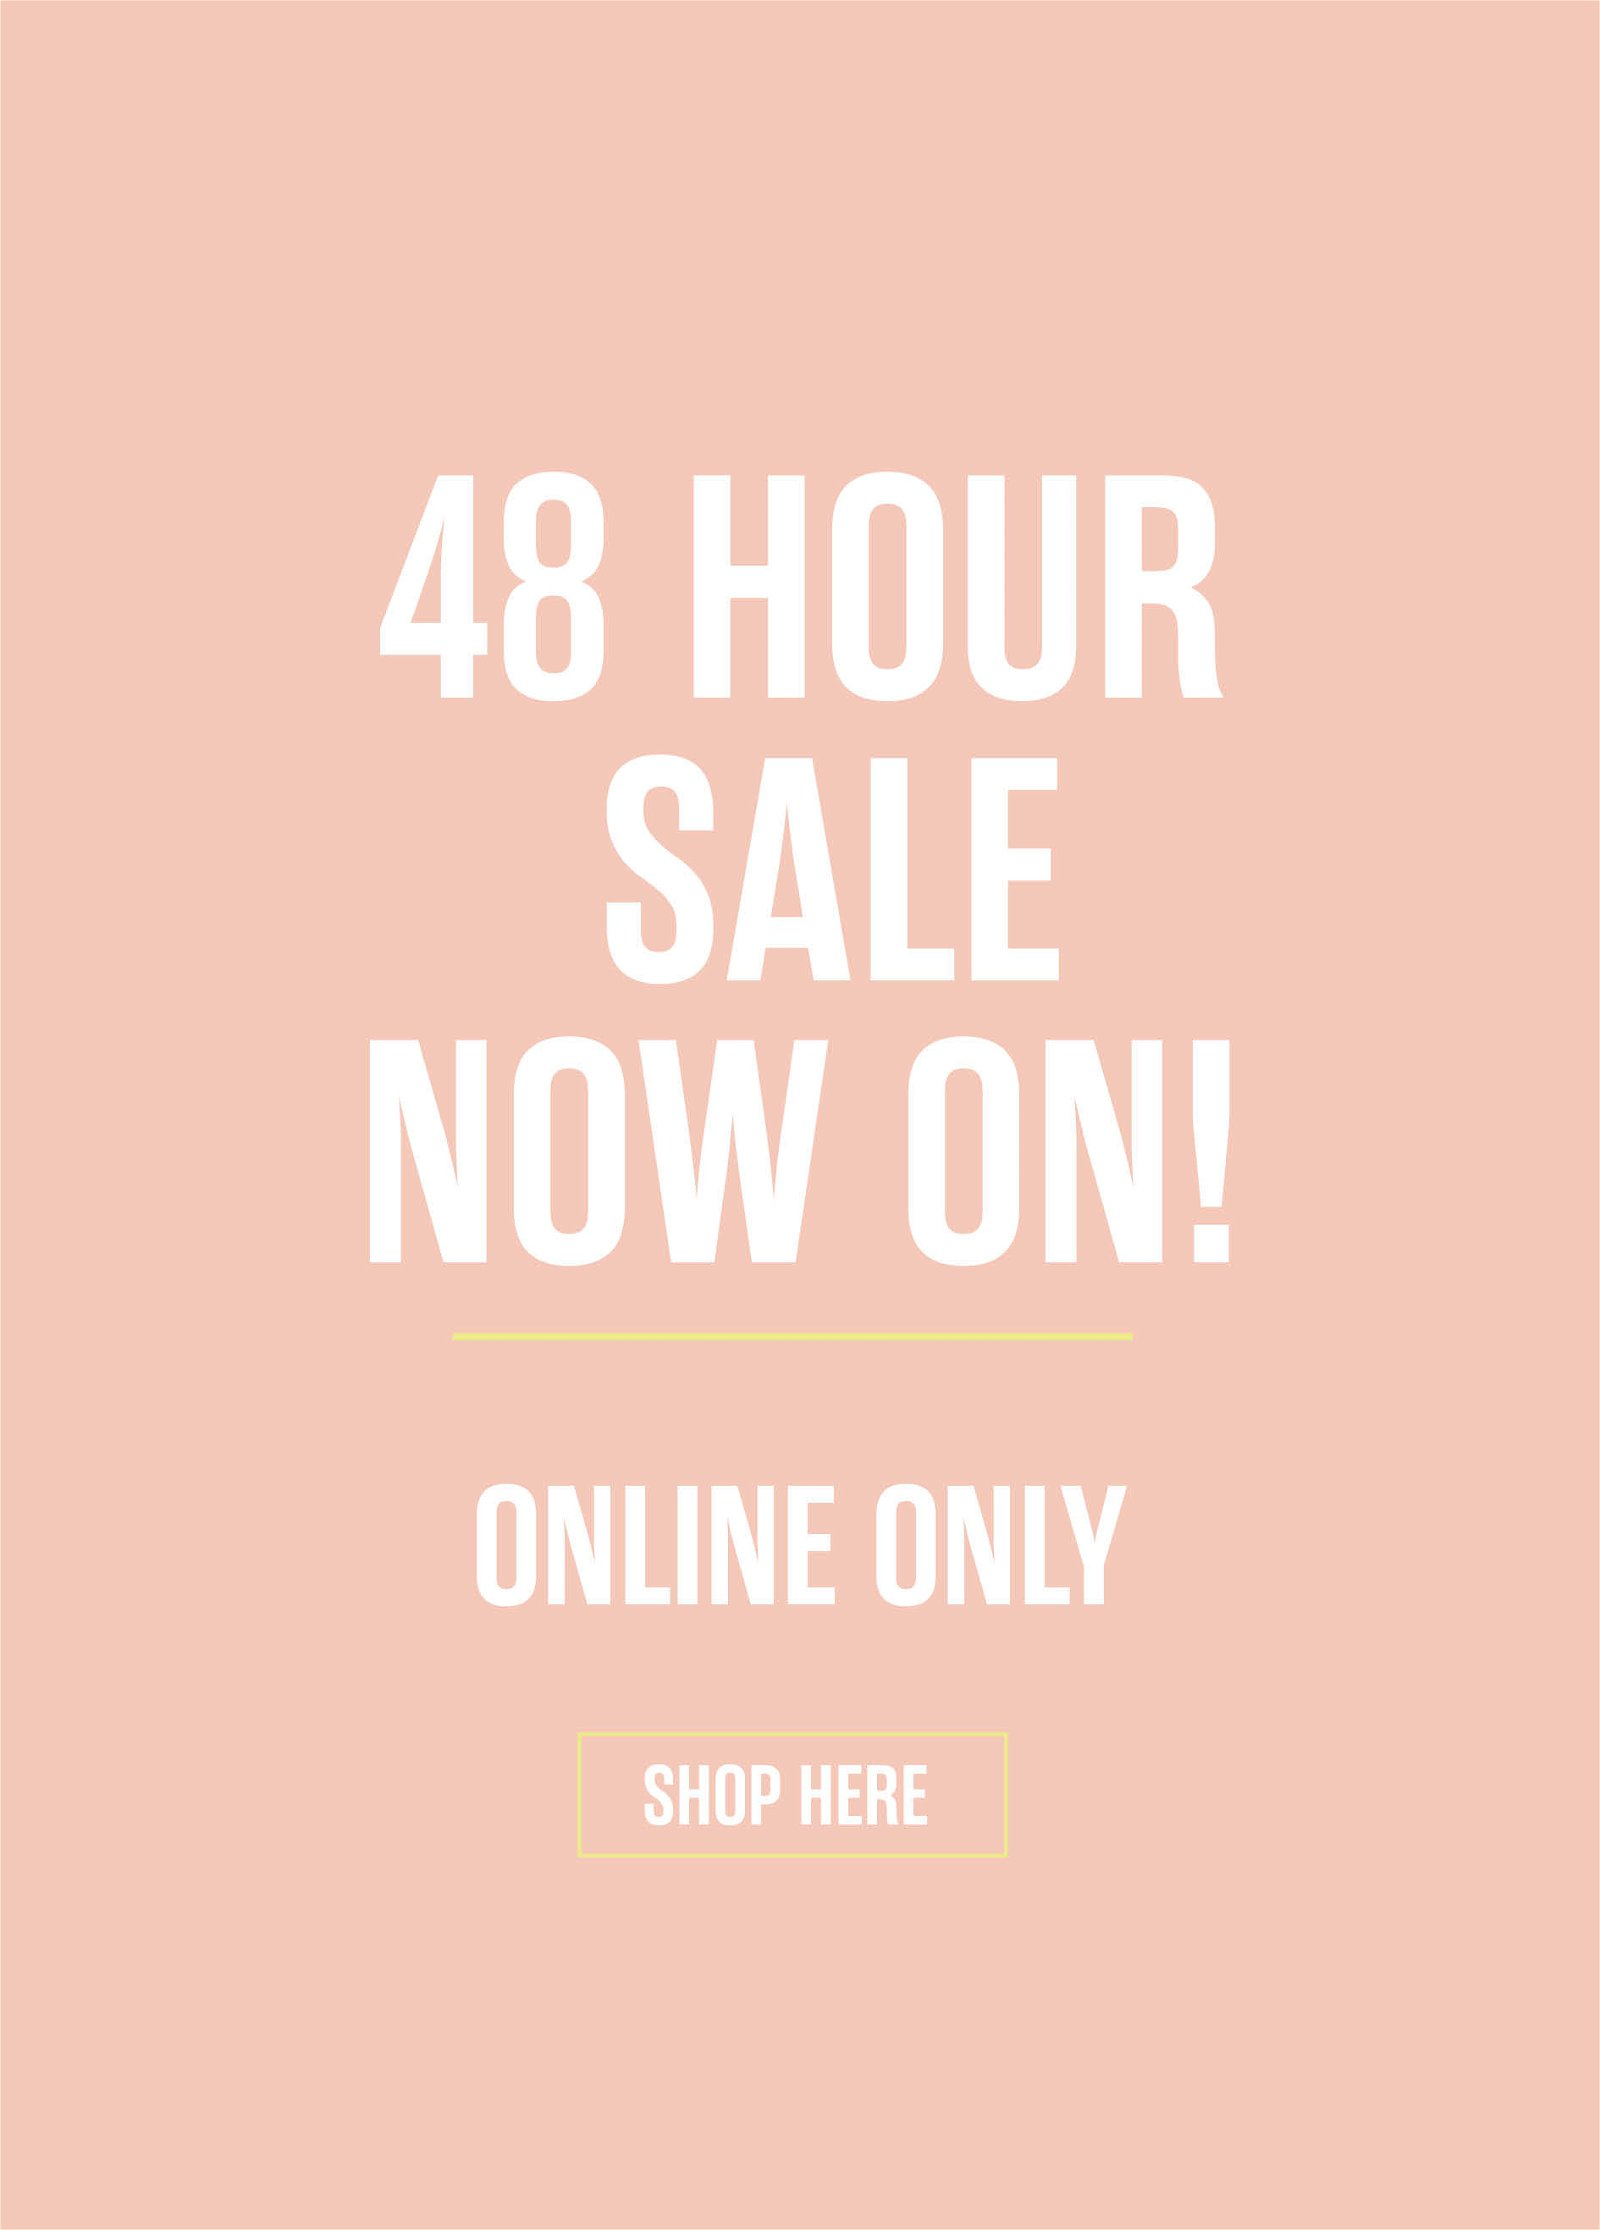 48 HOUR SALE NOW ON!